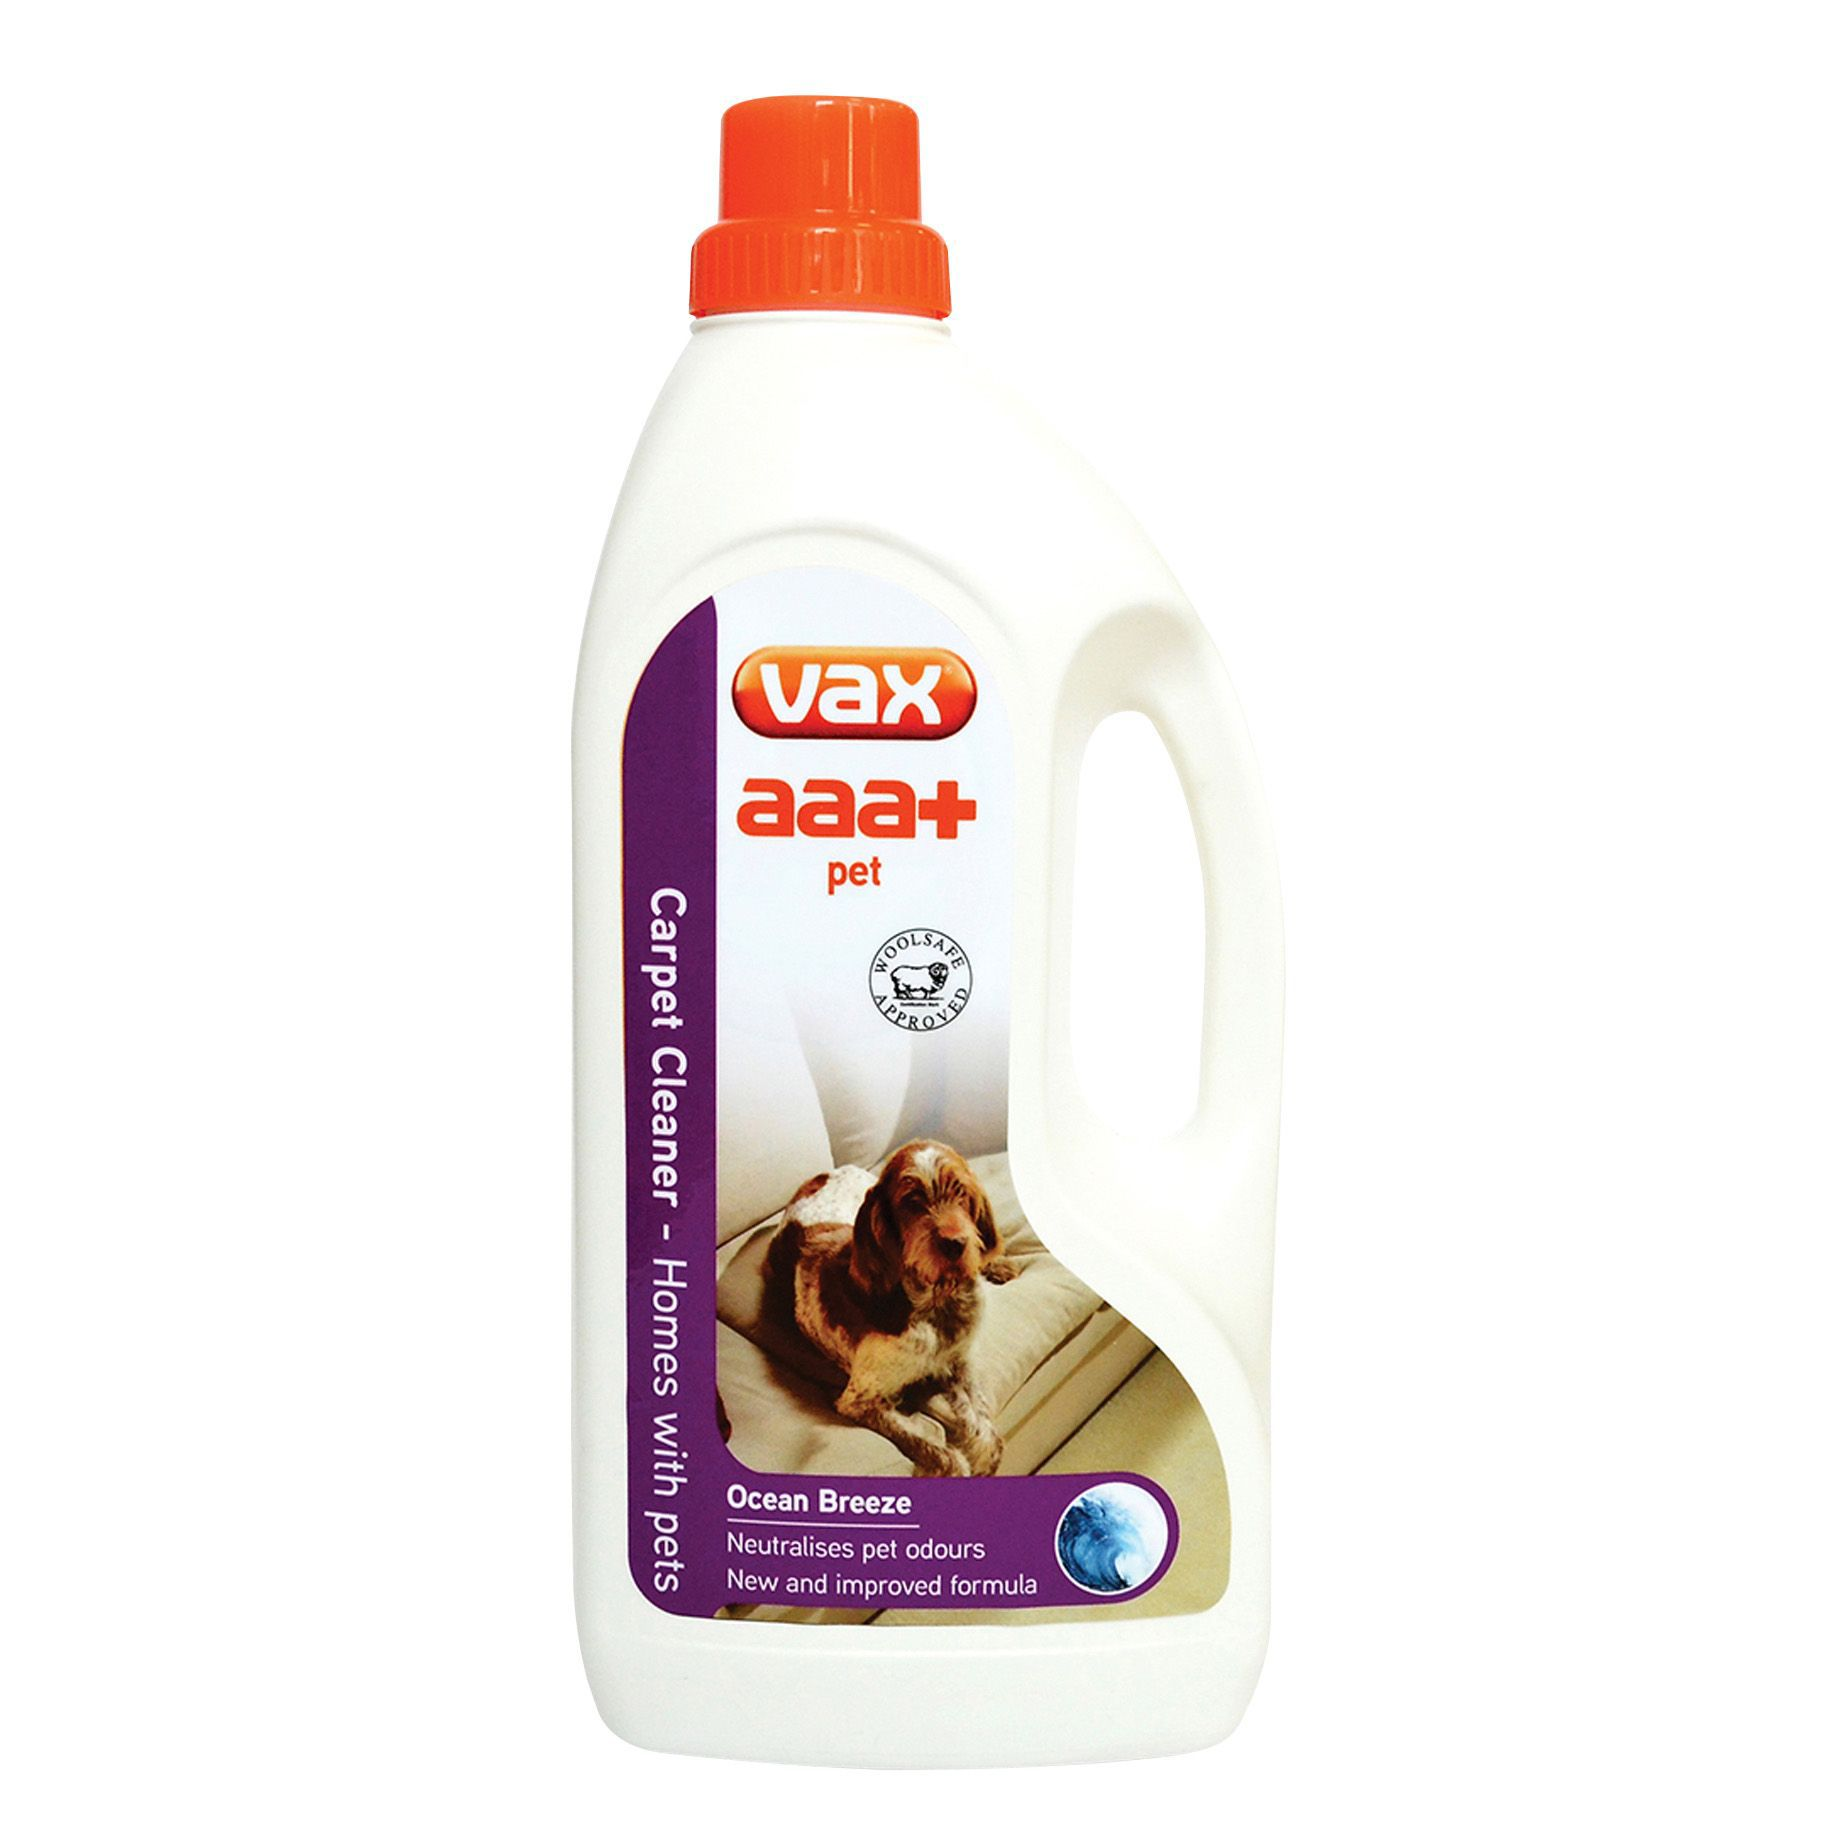 Diy Carpet Cleaner For Pets: Vax Pets Plus AAA Carpet Cleaner, 1500 Ml